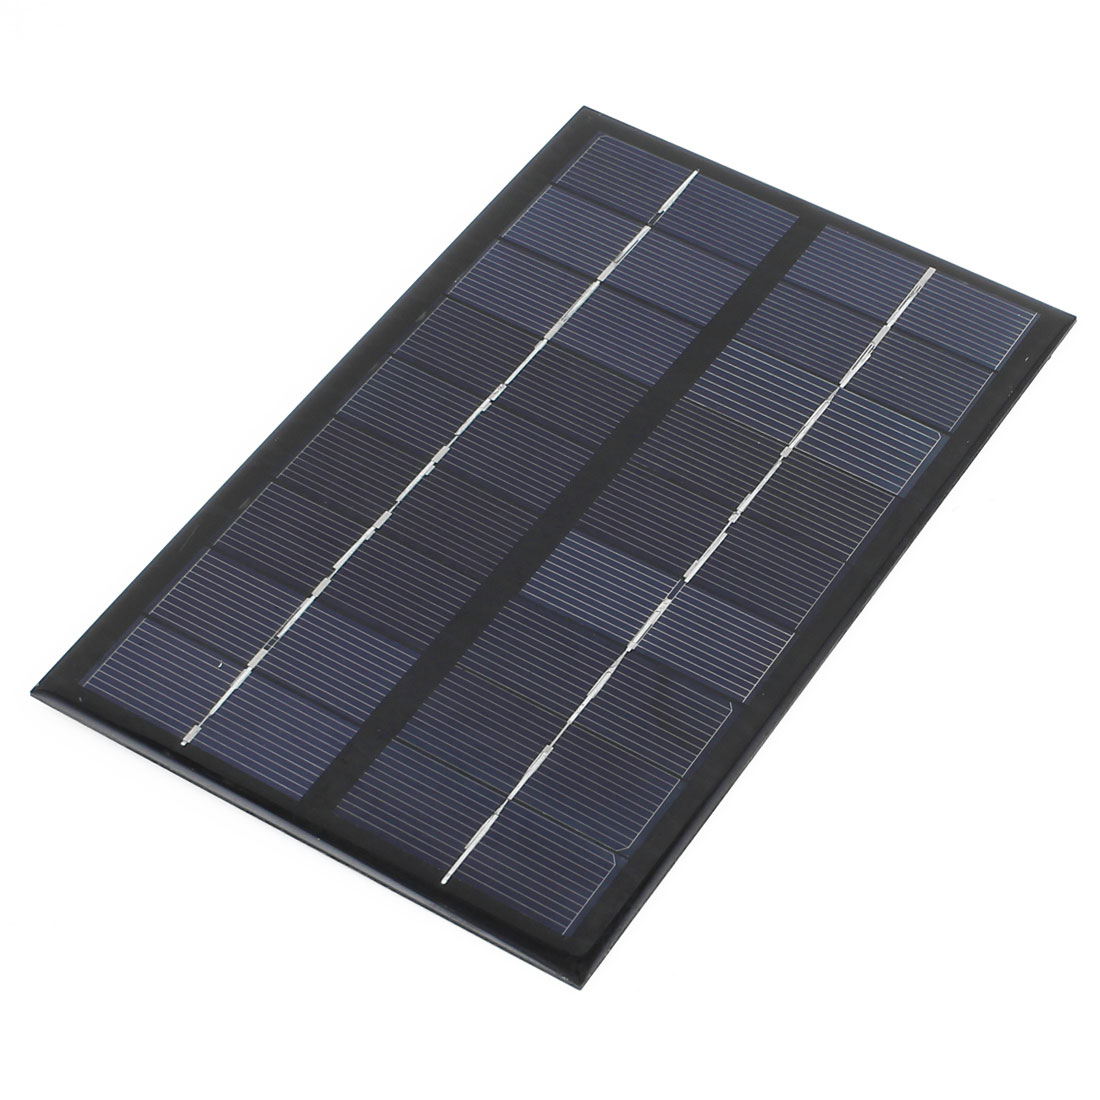 9V 3W DIY Polycrystallinesilicon Solar Panel Power Cell Battery Charger 195mm x 125mm